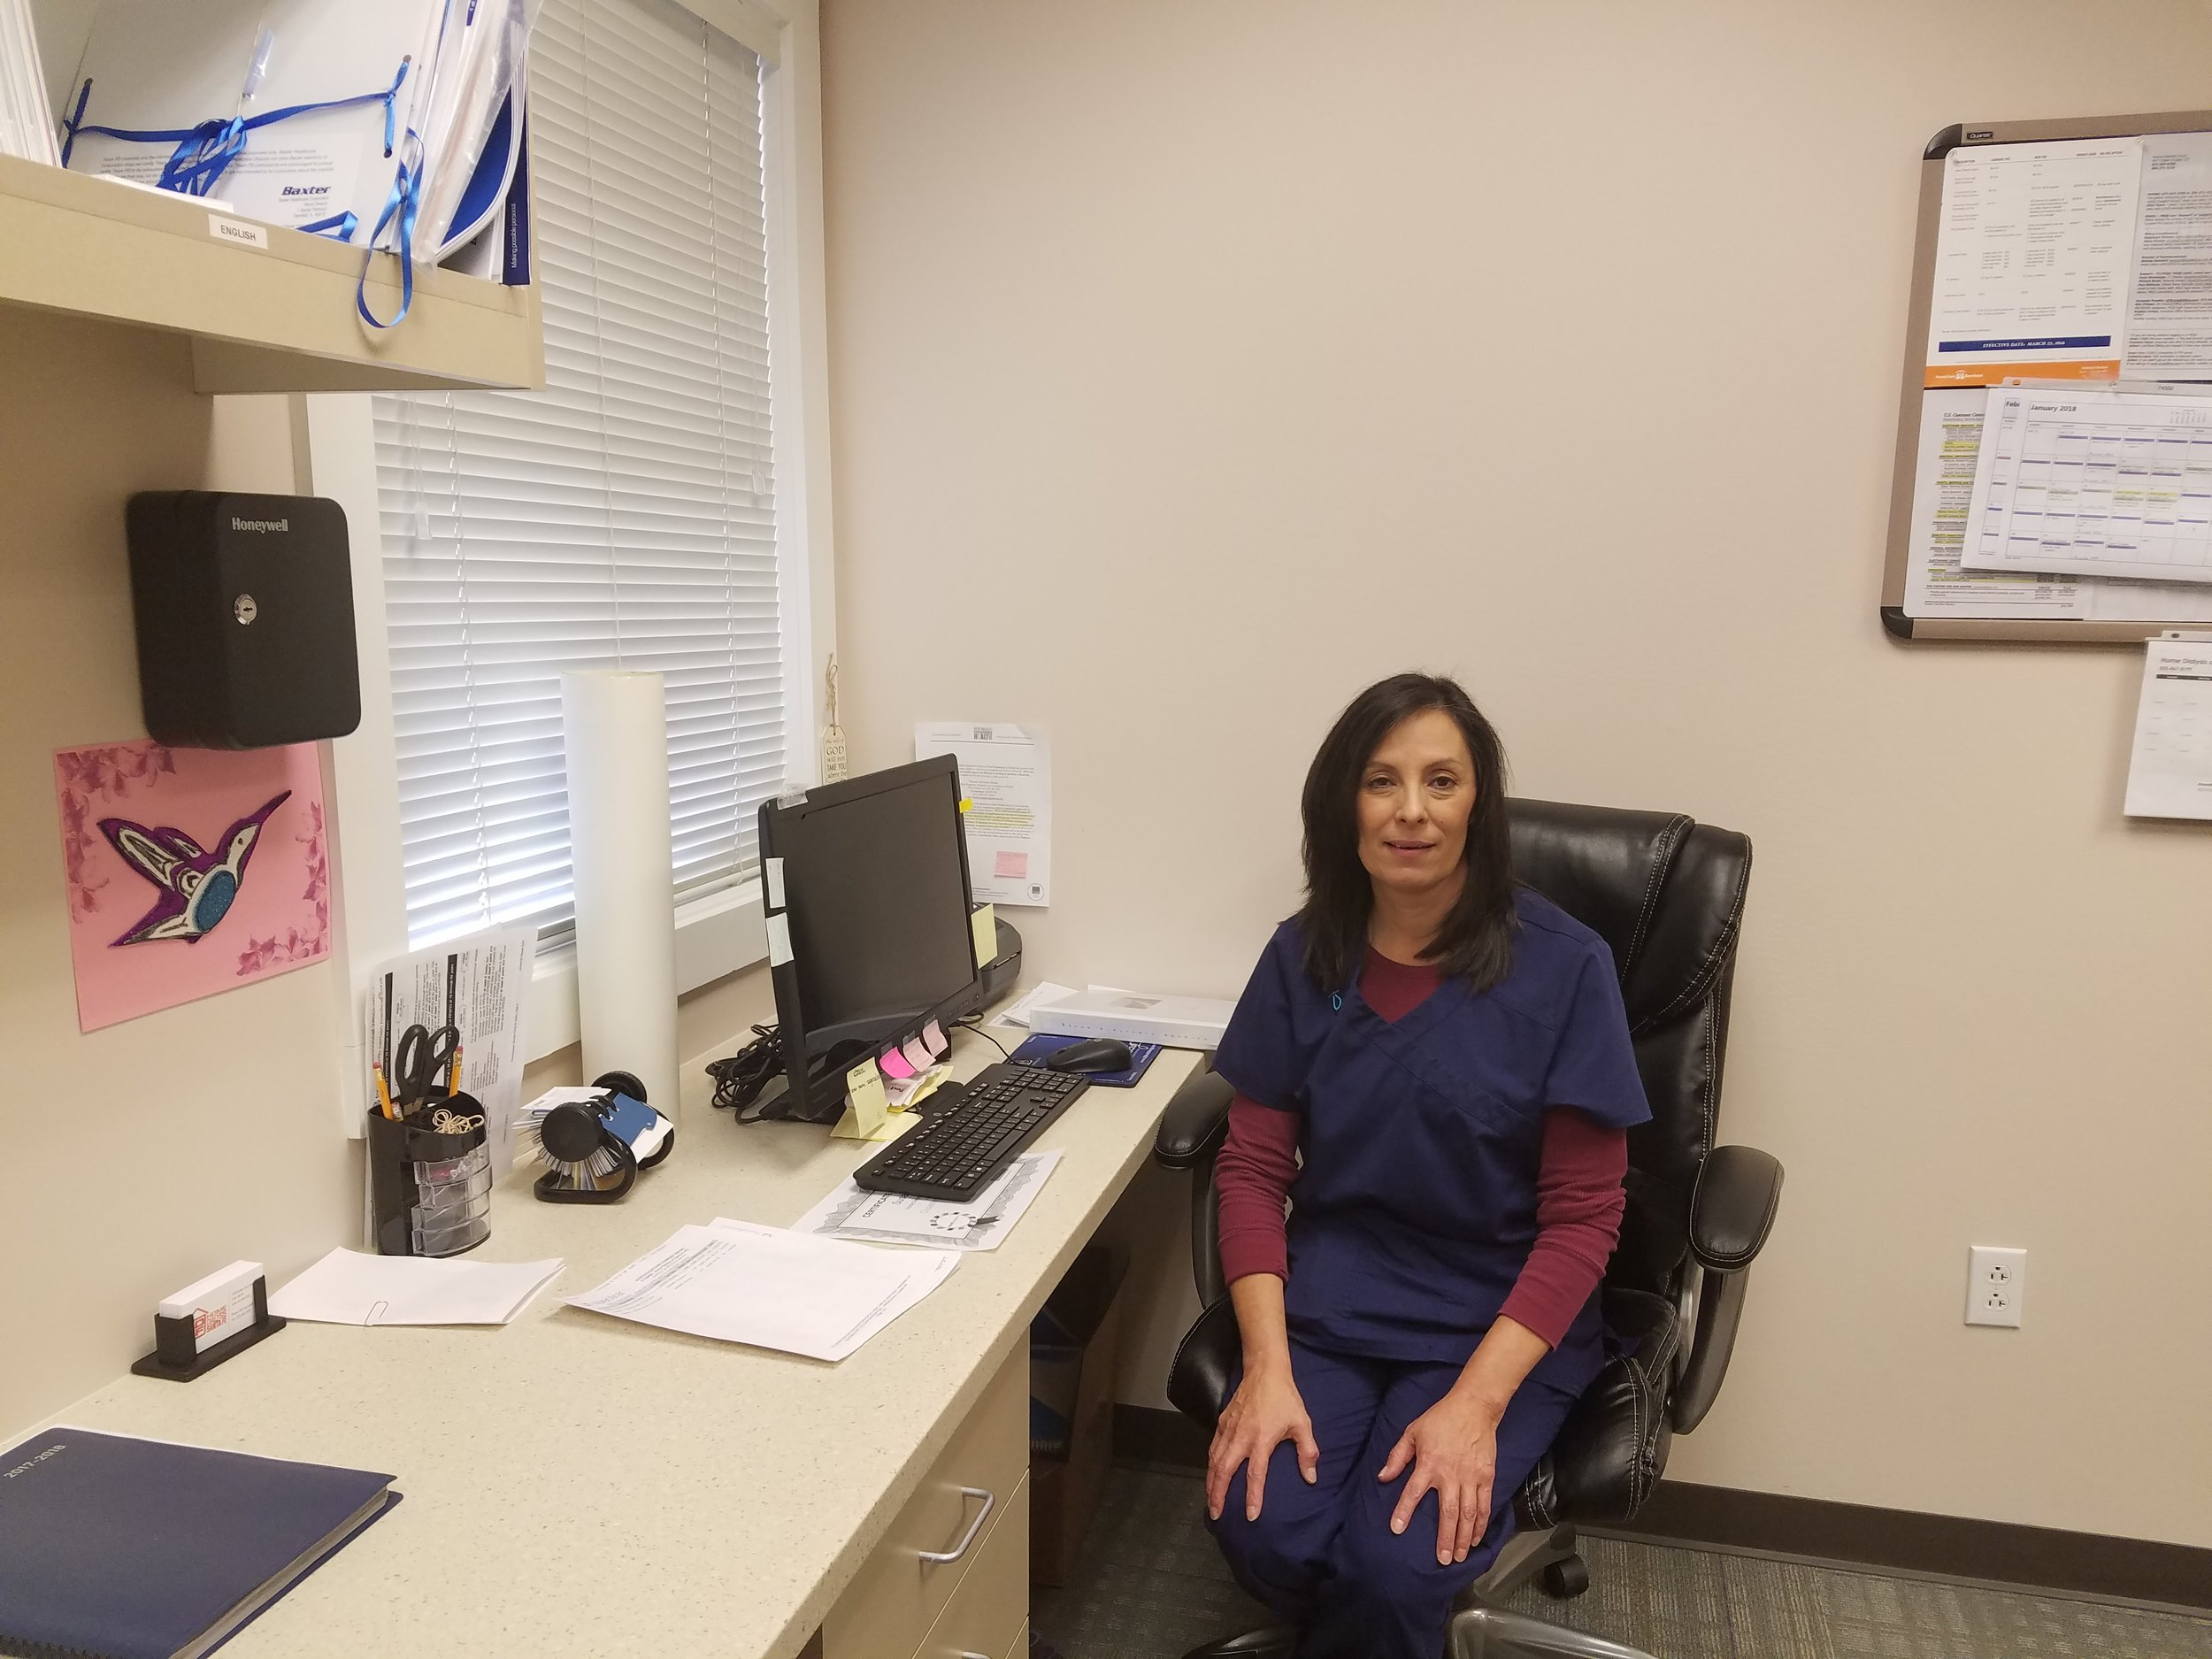 HDSF (Home Dialysis of Santa Fe) Clinic Manager and Nurse - Annette Gonzales.jpg